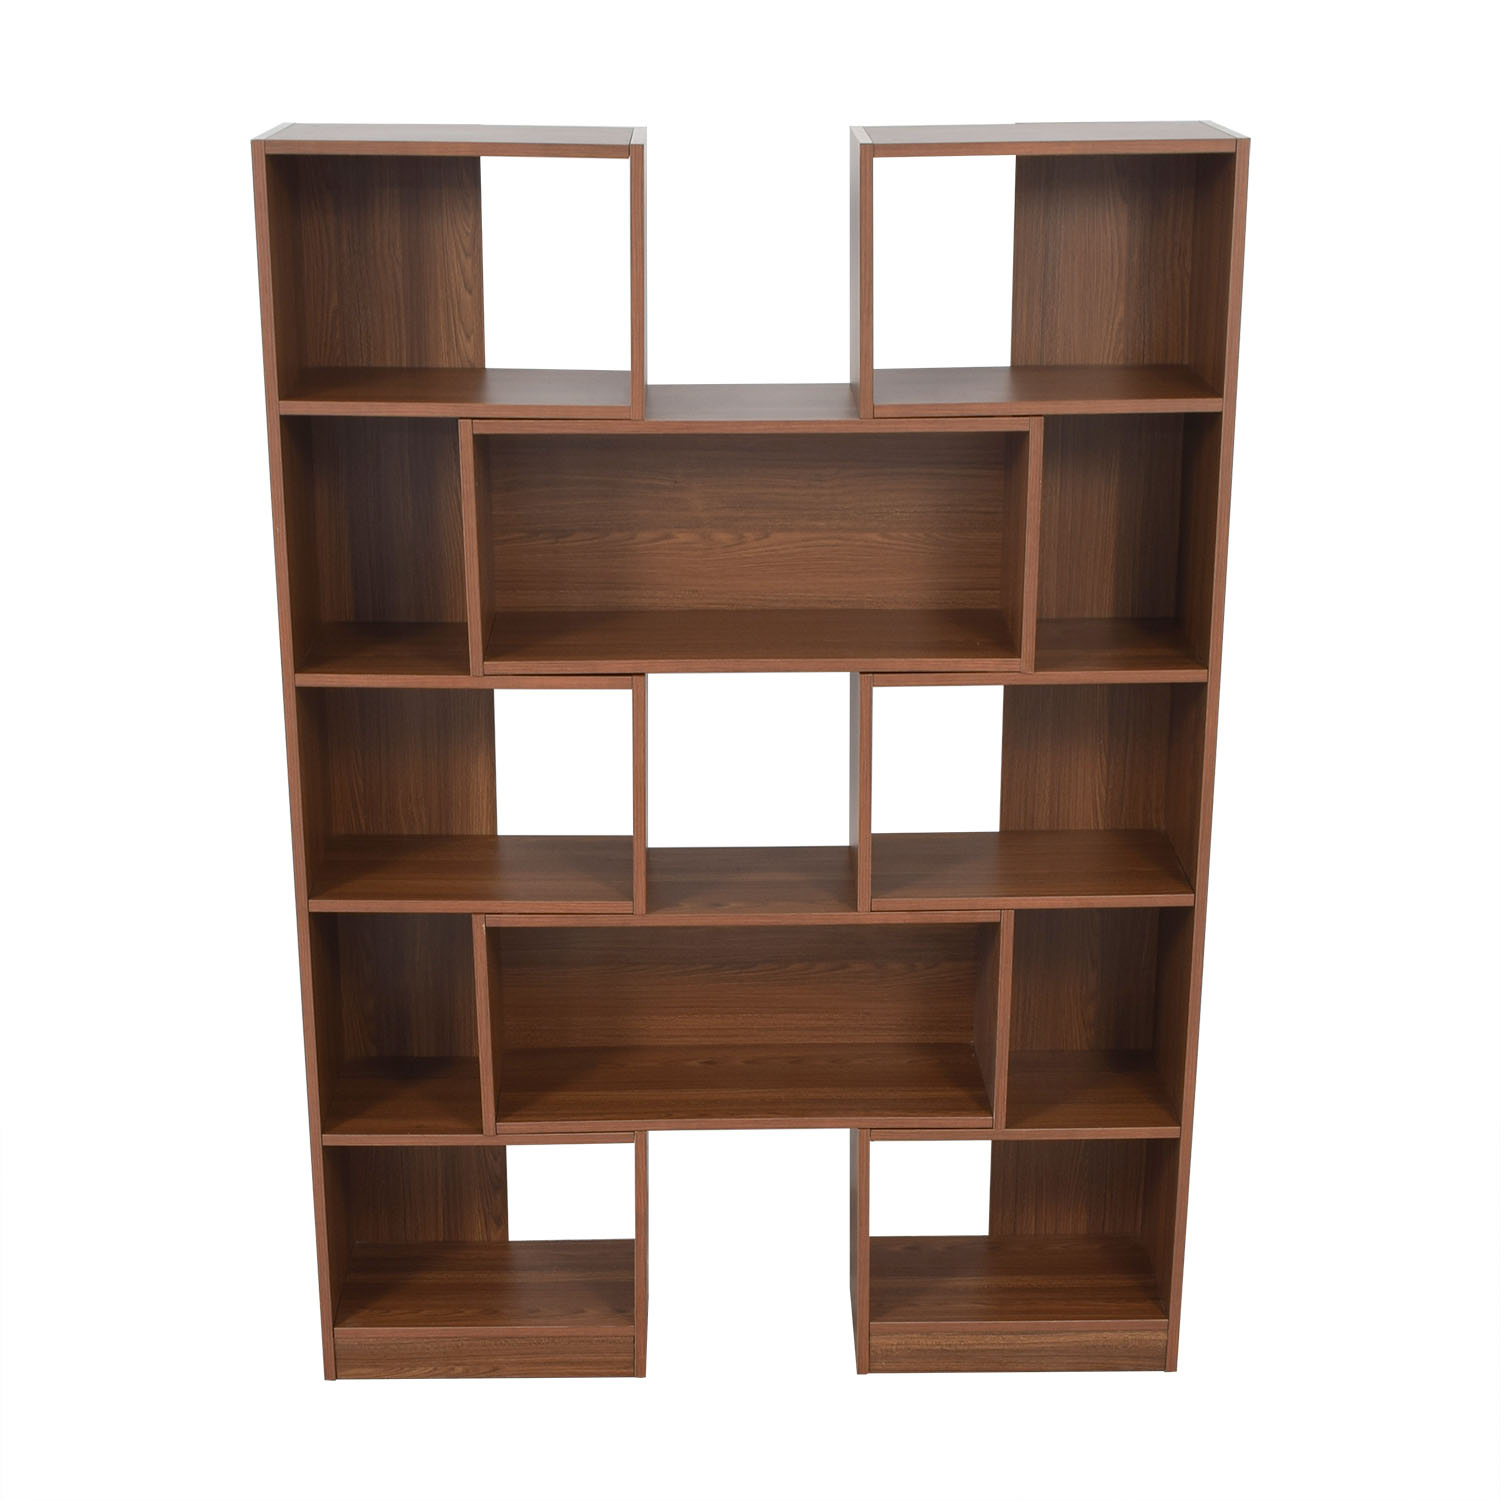 Crate & Barrel Crate & Barrel Puzzle Bookshelf Storage